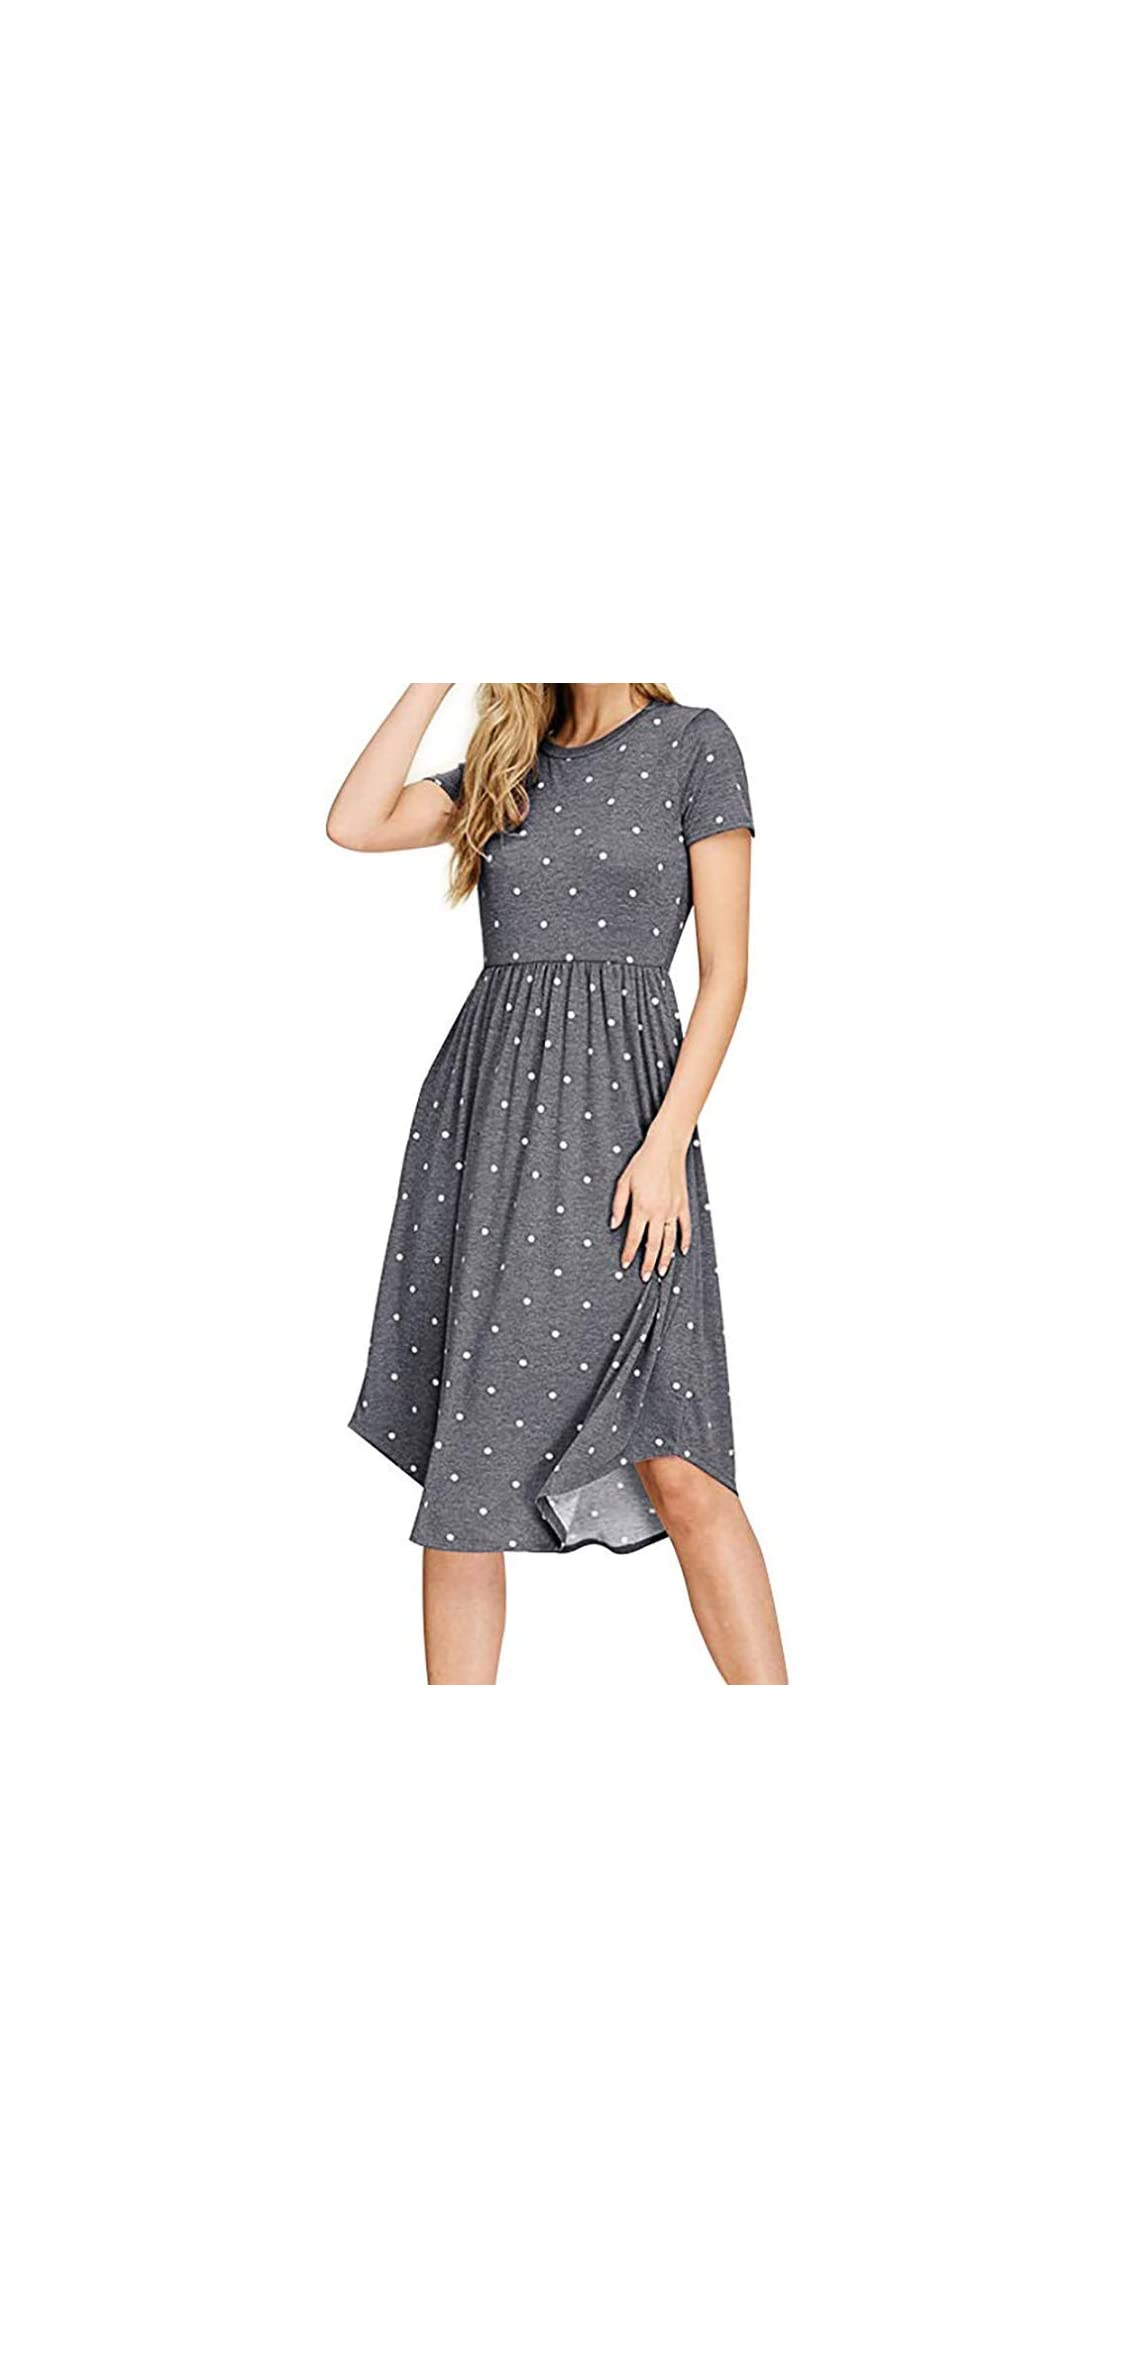 Women's Casual Summer Short Sleeve Pleated Polka Dot Midi